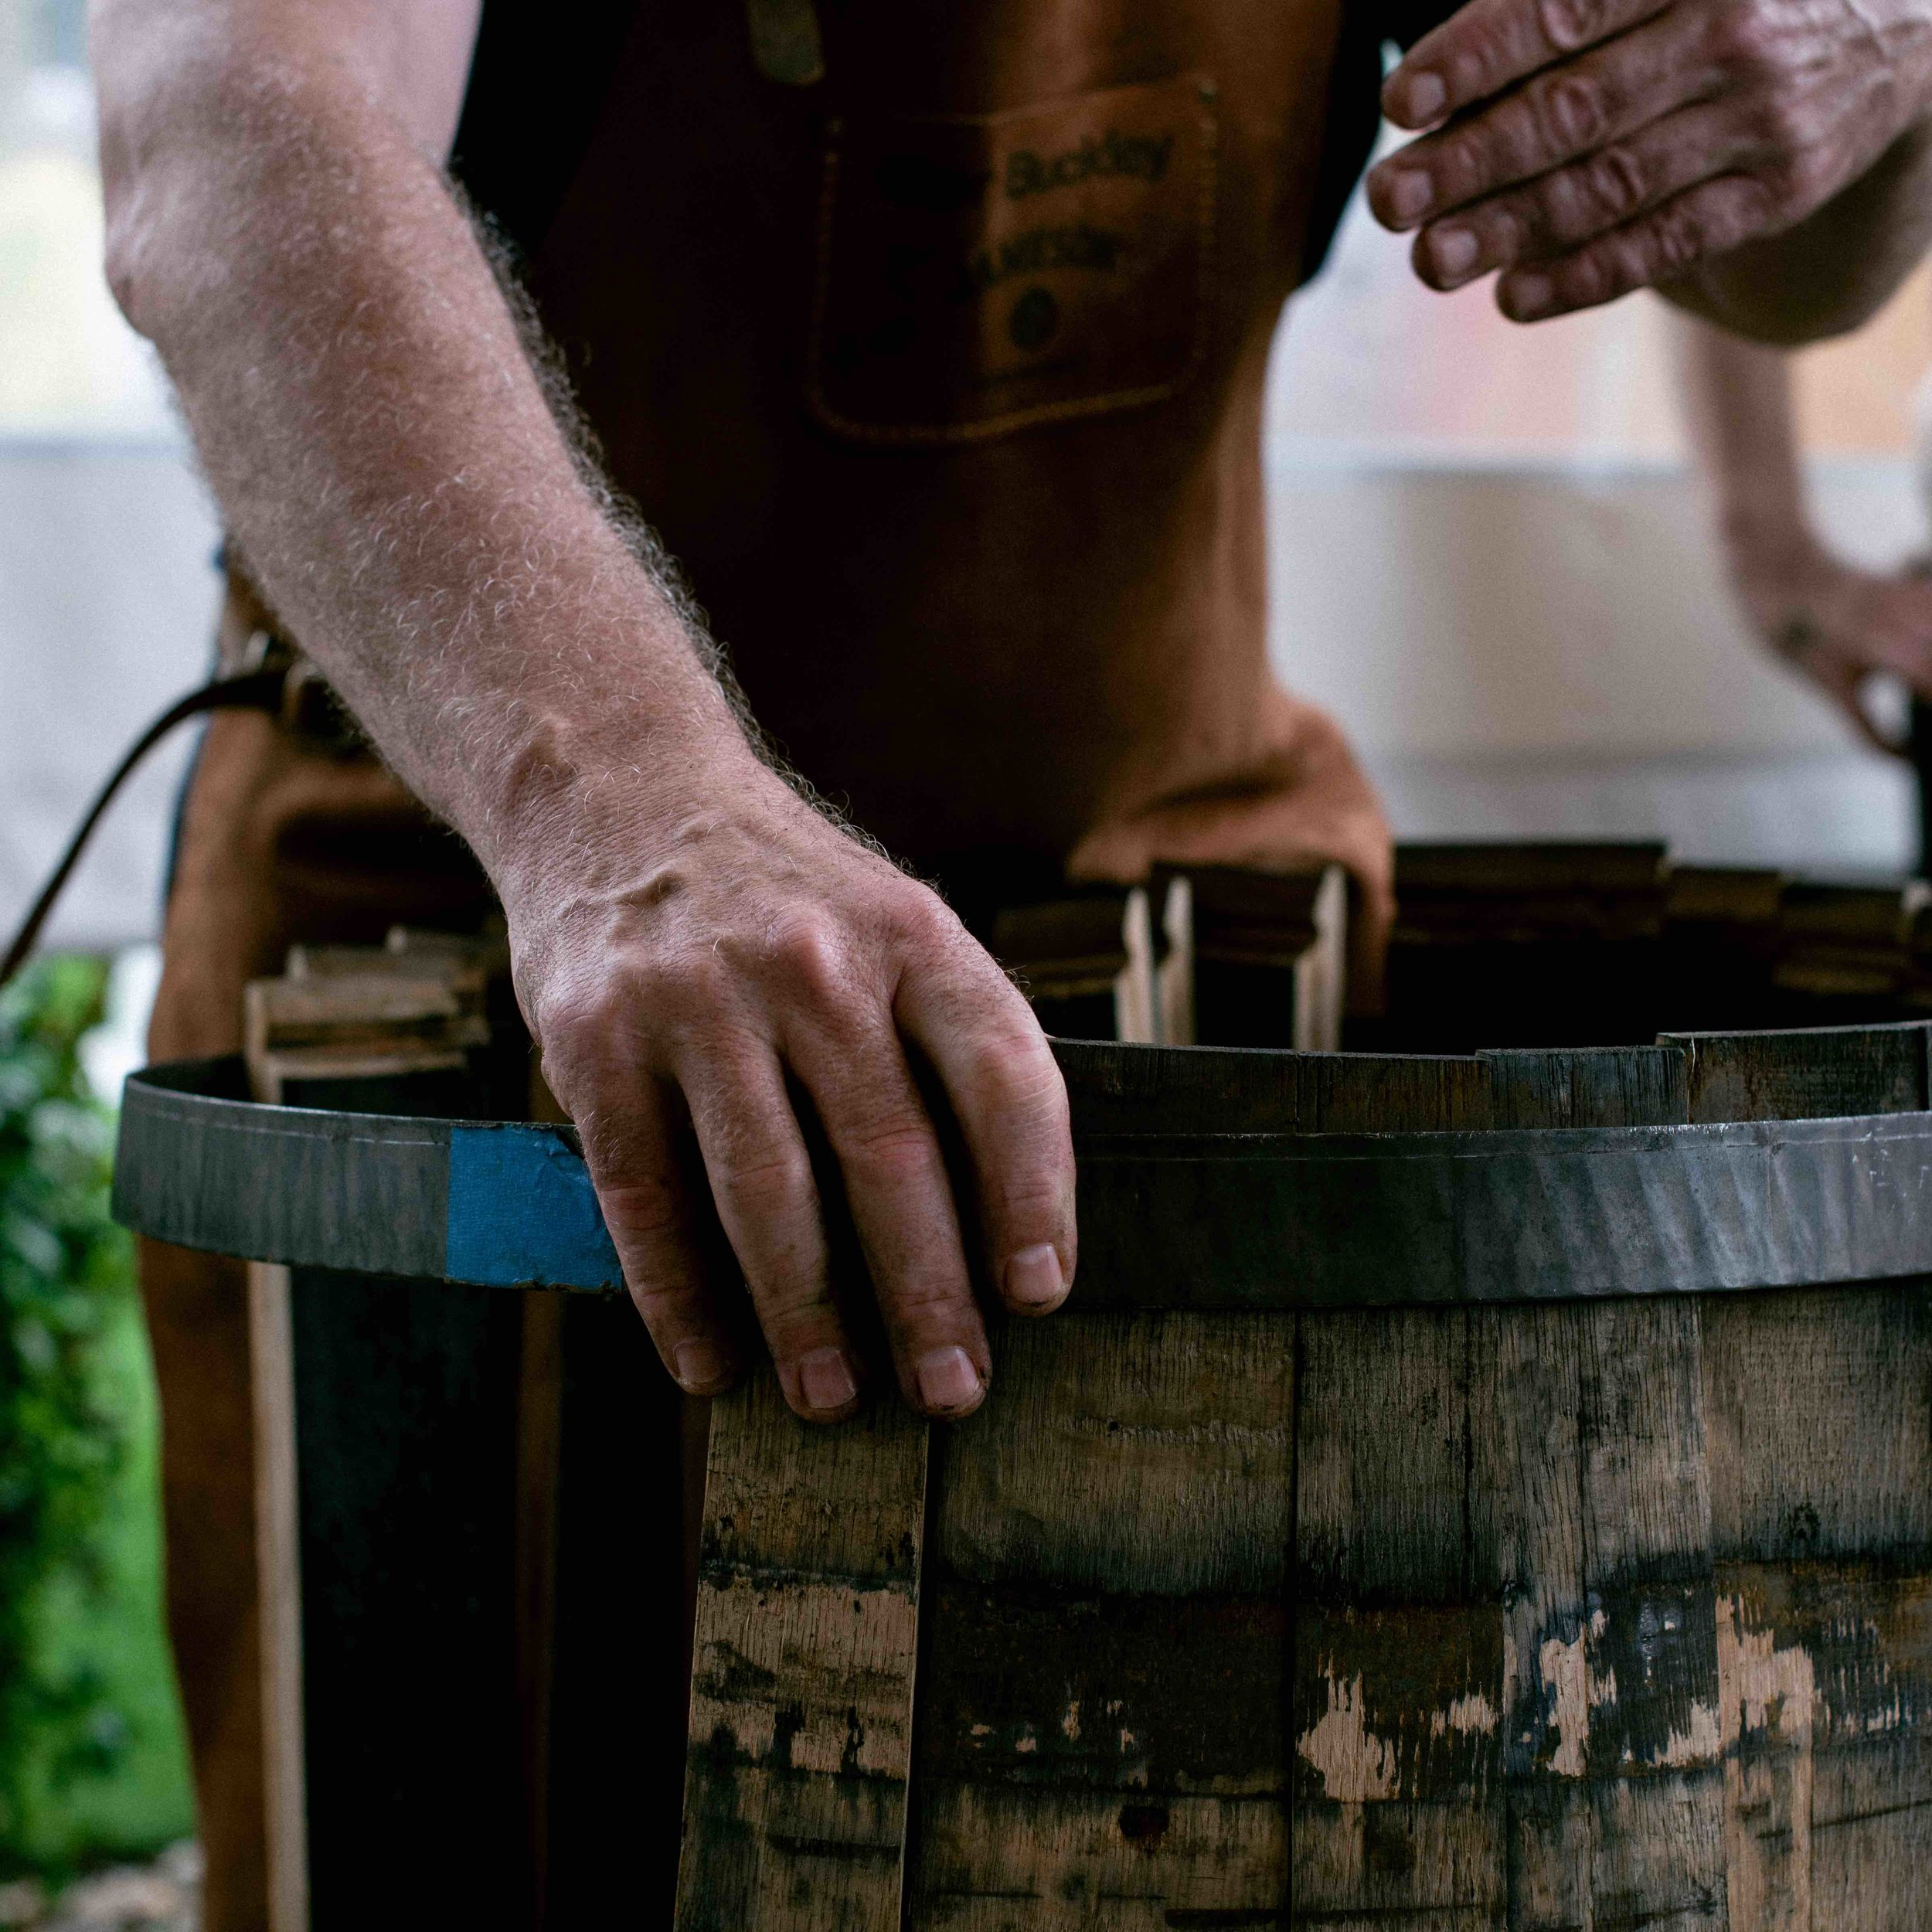 FY19_JAM_JORG_LTN_BP_MIAMI_PRODUCT_instagram_1x1_STILL_Ger_Barrel_Hands_CloseUp.jpeg